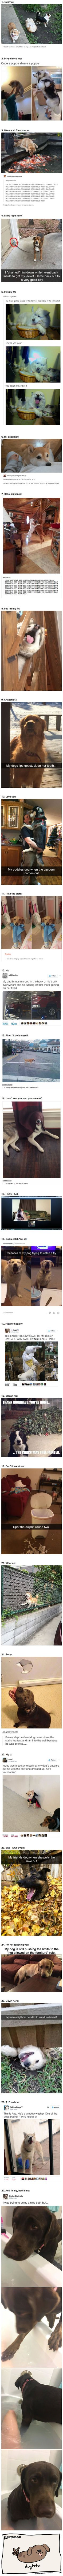 "27 Funny Photos That Will Make You Say, ""I LOVE DOGS"""